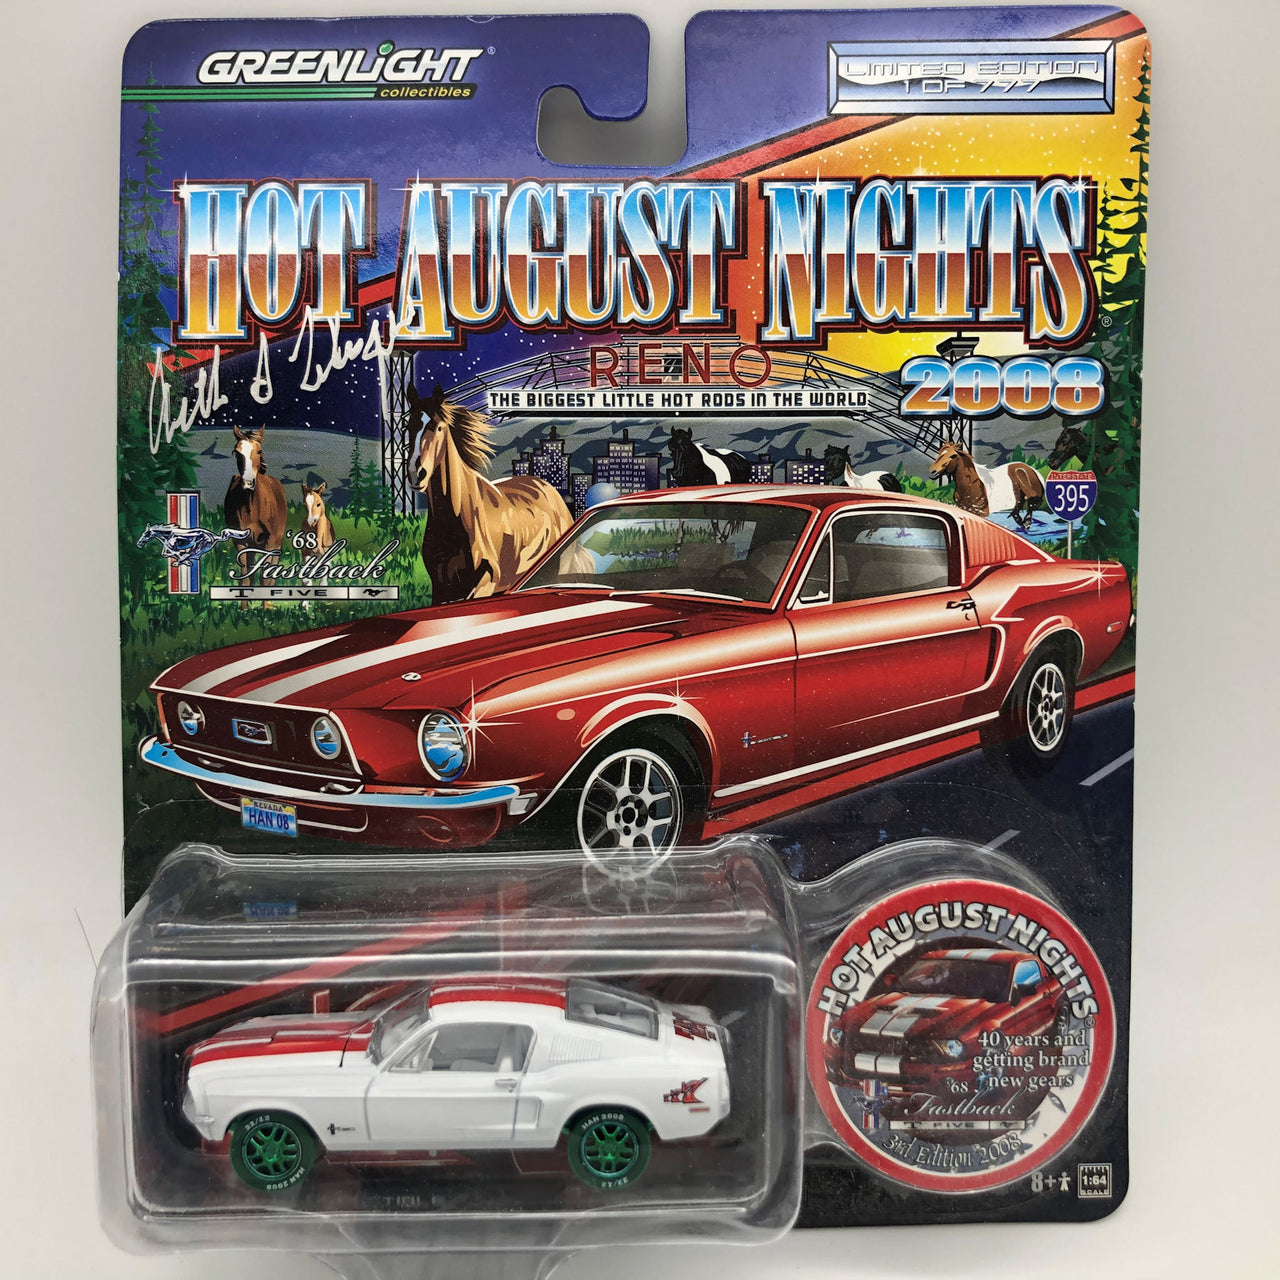 Greenlight 2008 HAN Reno 1968 Mustang Fastback Five Die Cast Car Signed